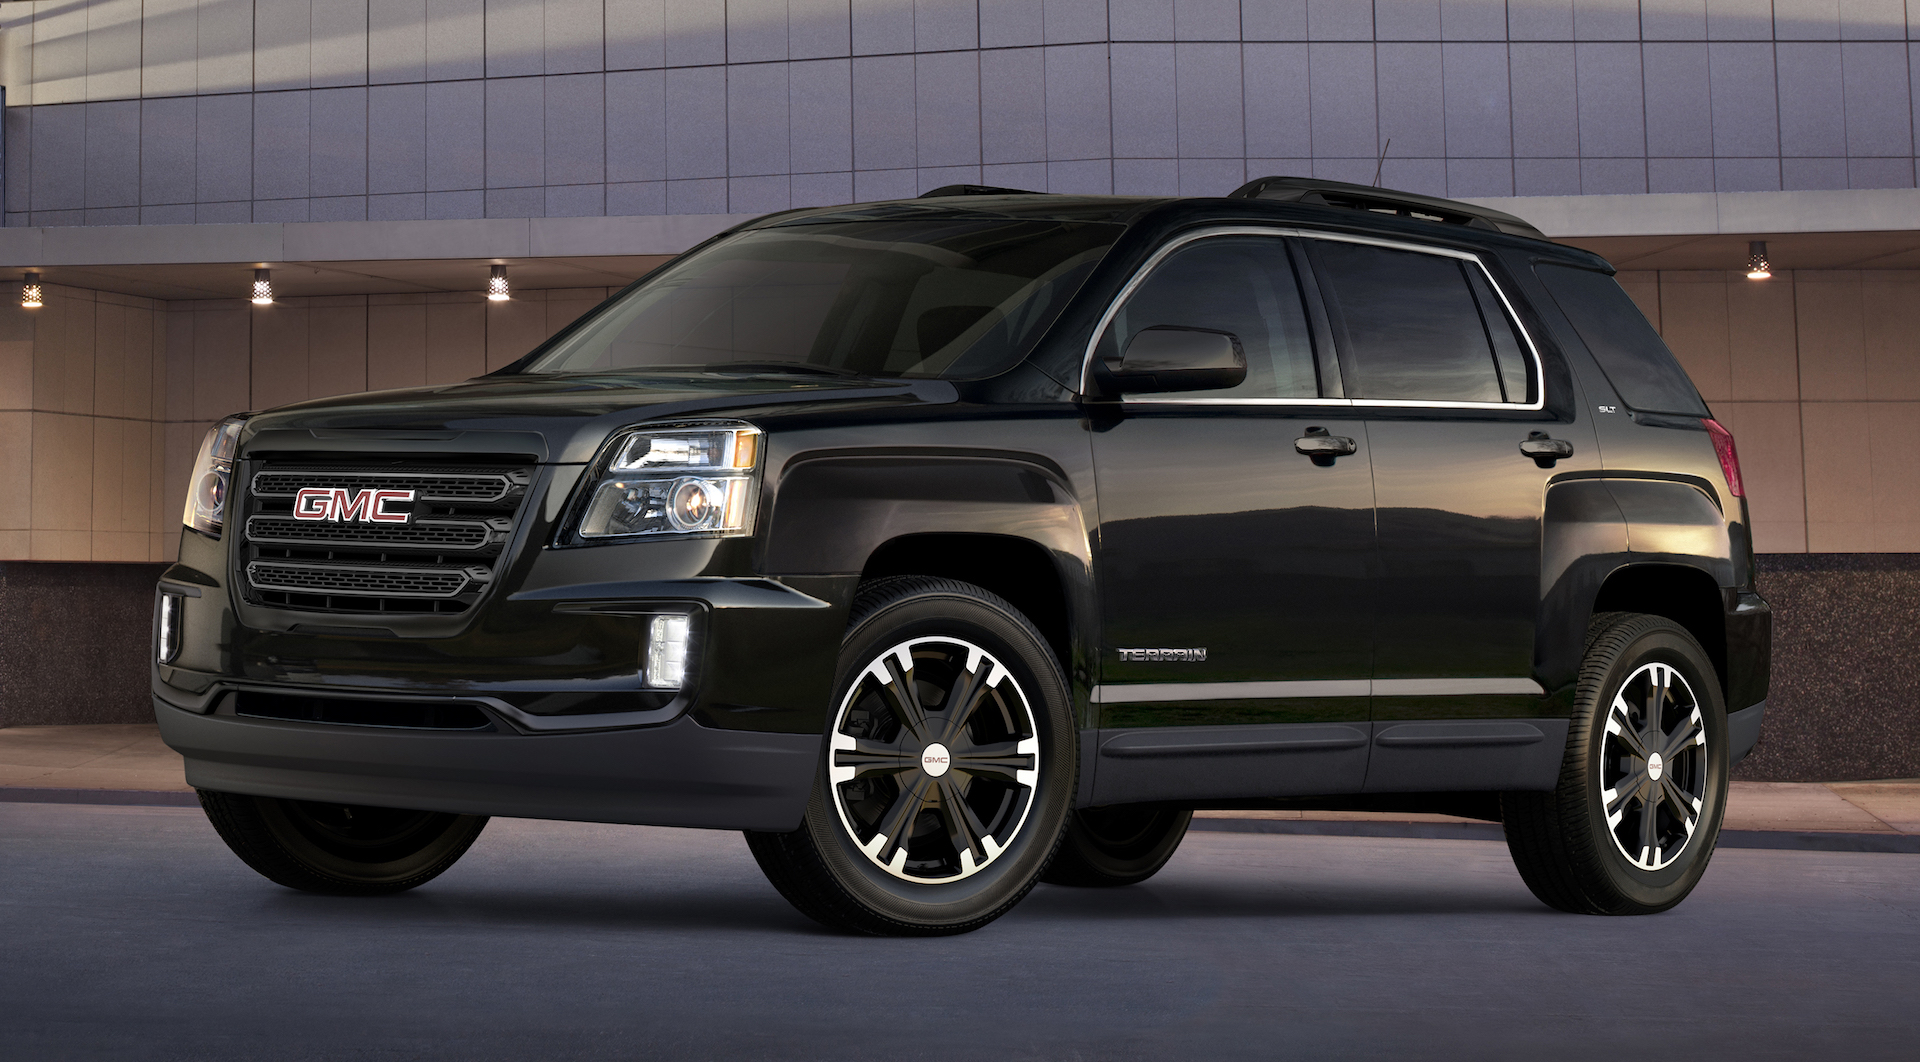 2017 Gmc Terrain Vw Selgate Update Dodge Dart To What S New The Car Connection